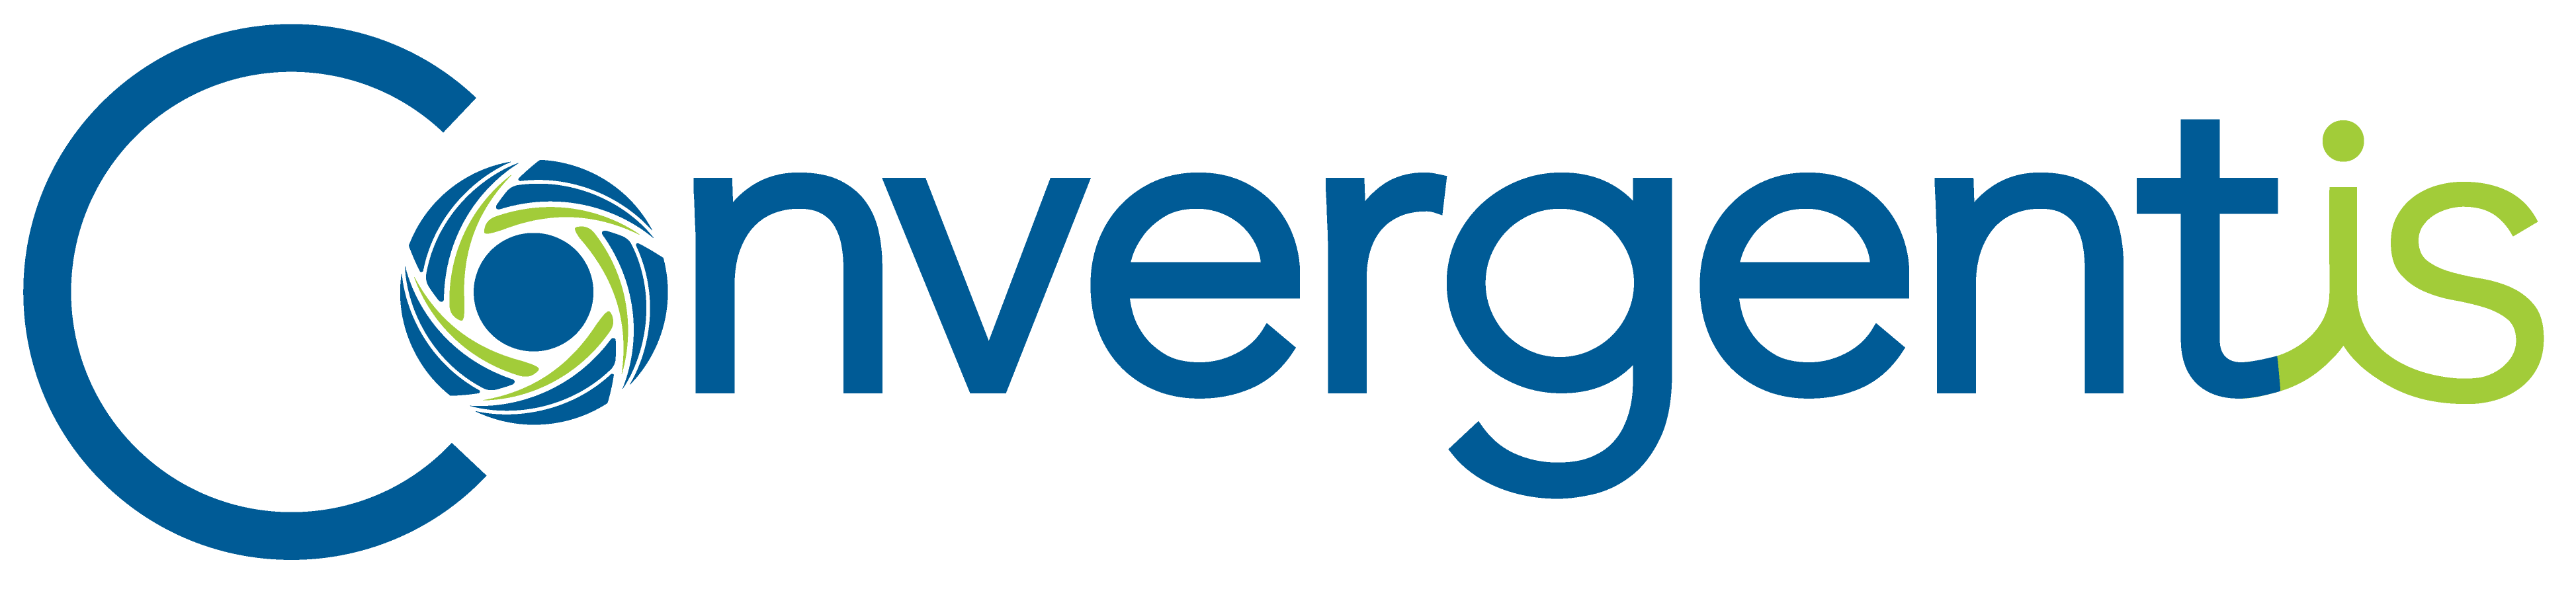 Convergent-is logo blue-01